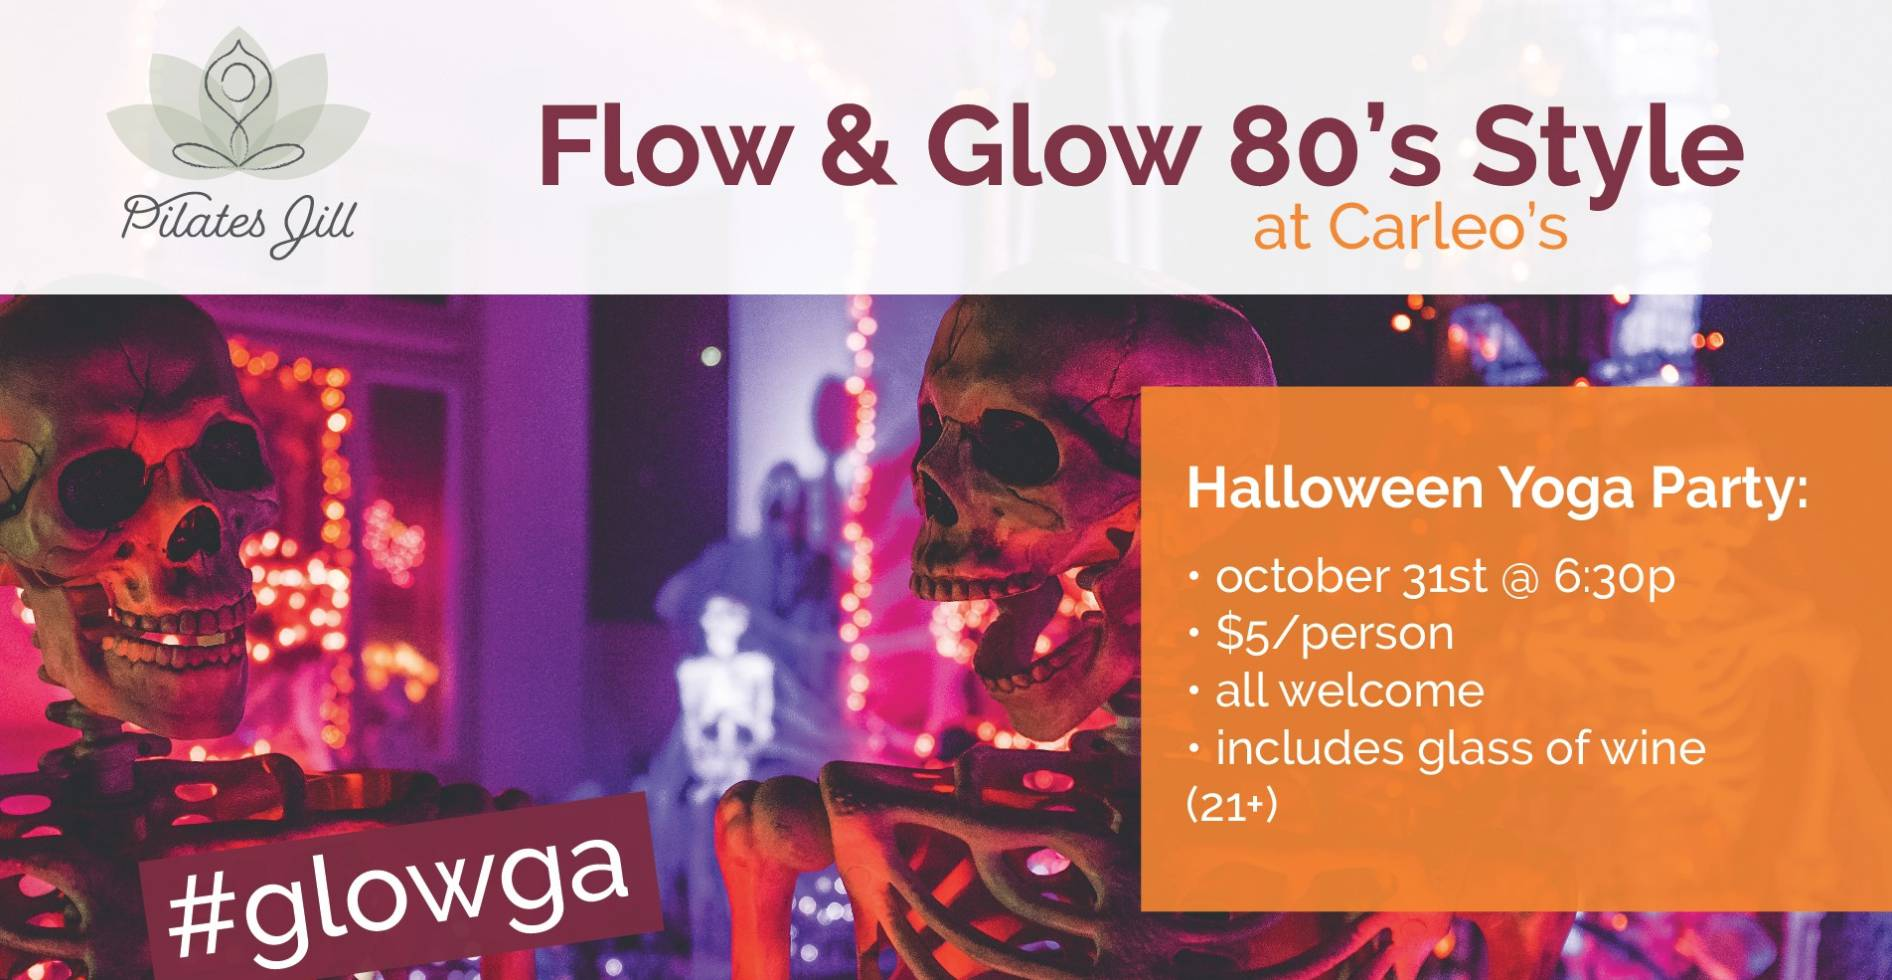 Flow and Glow 80's style